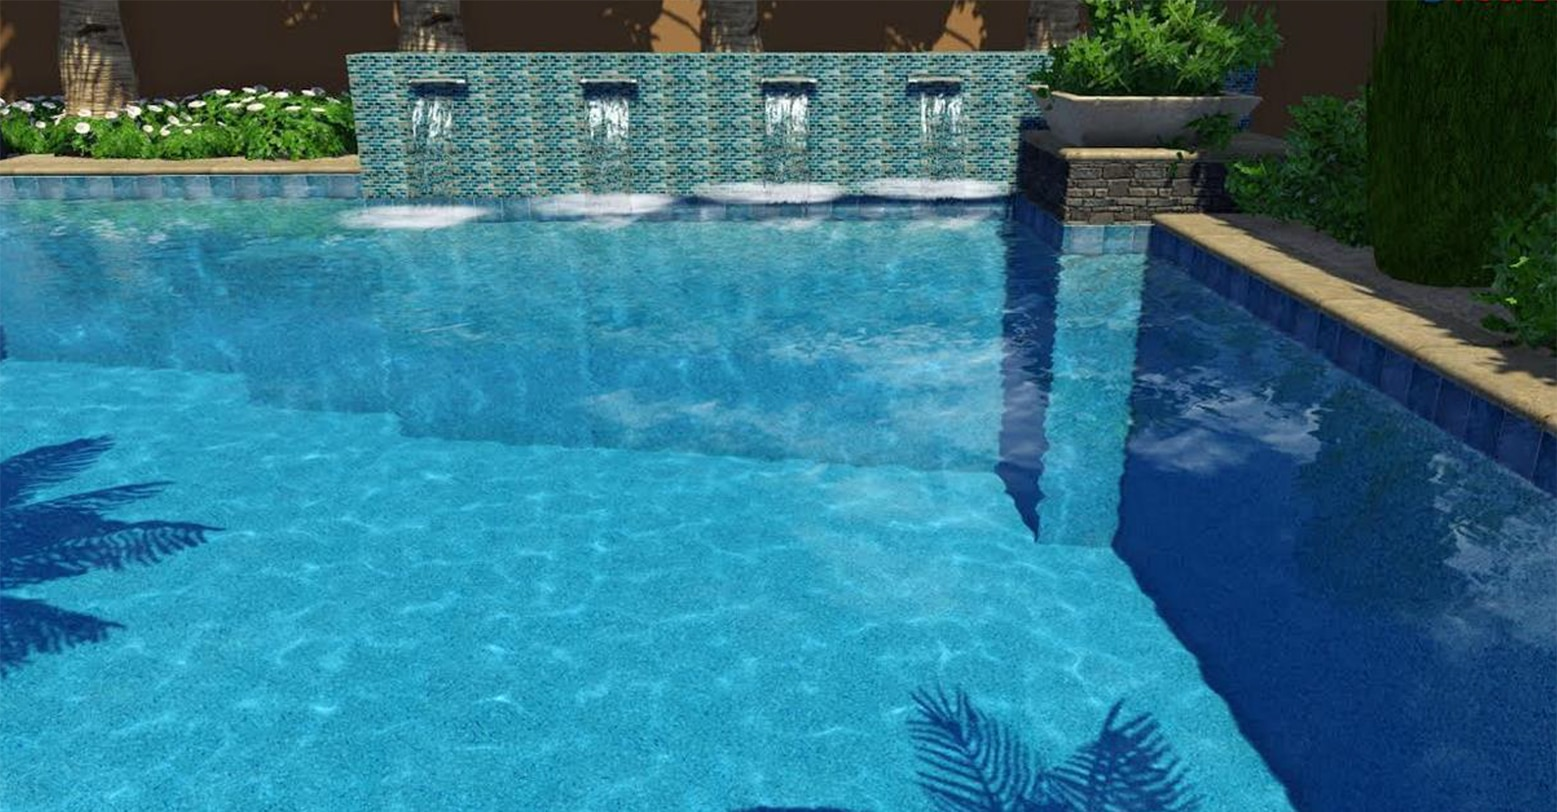 Swimming pool completed by BYOP, crystal clear water, gorgeous water fountain wall.